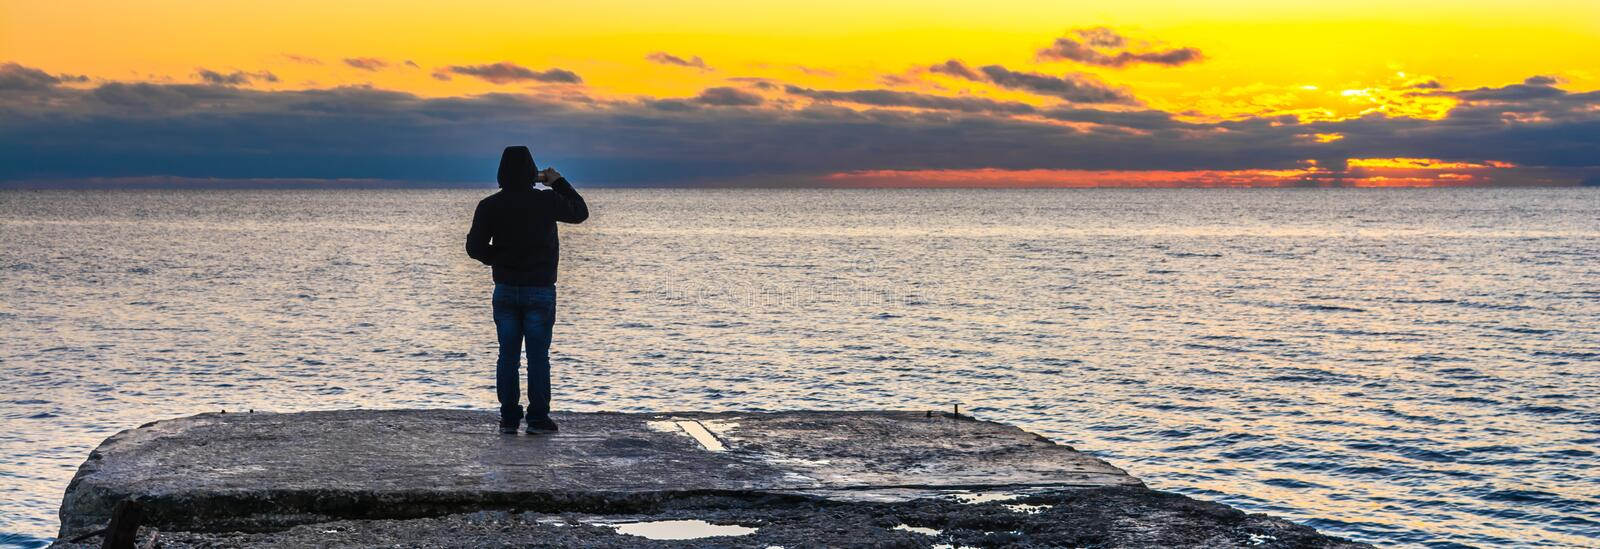 People at sunset. Man at sunset by the sea royalty free stock photos